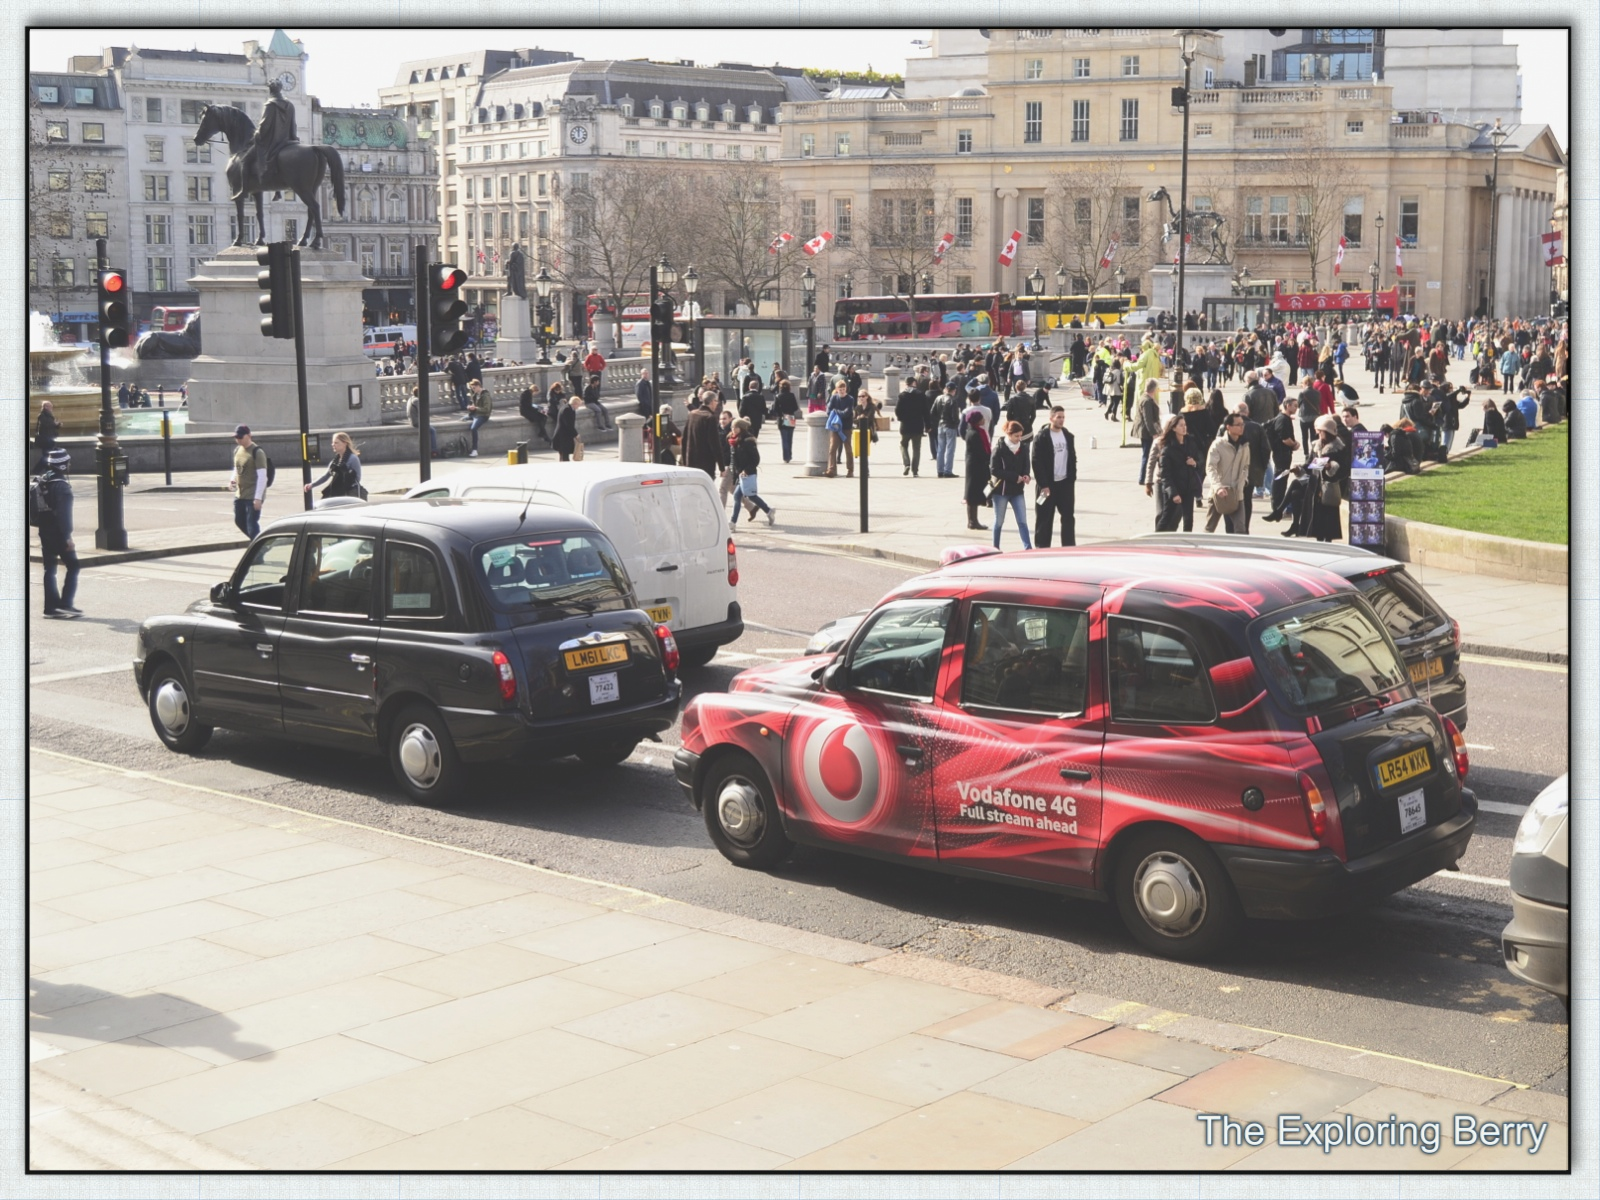 The Black Cabs